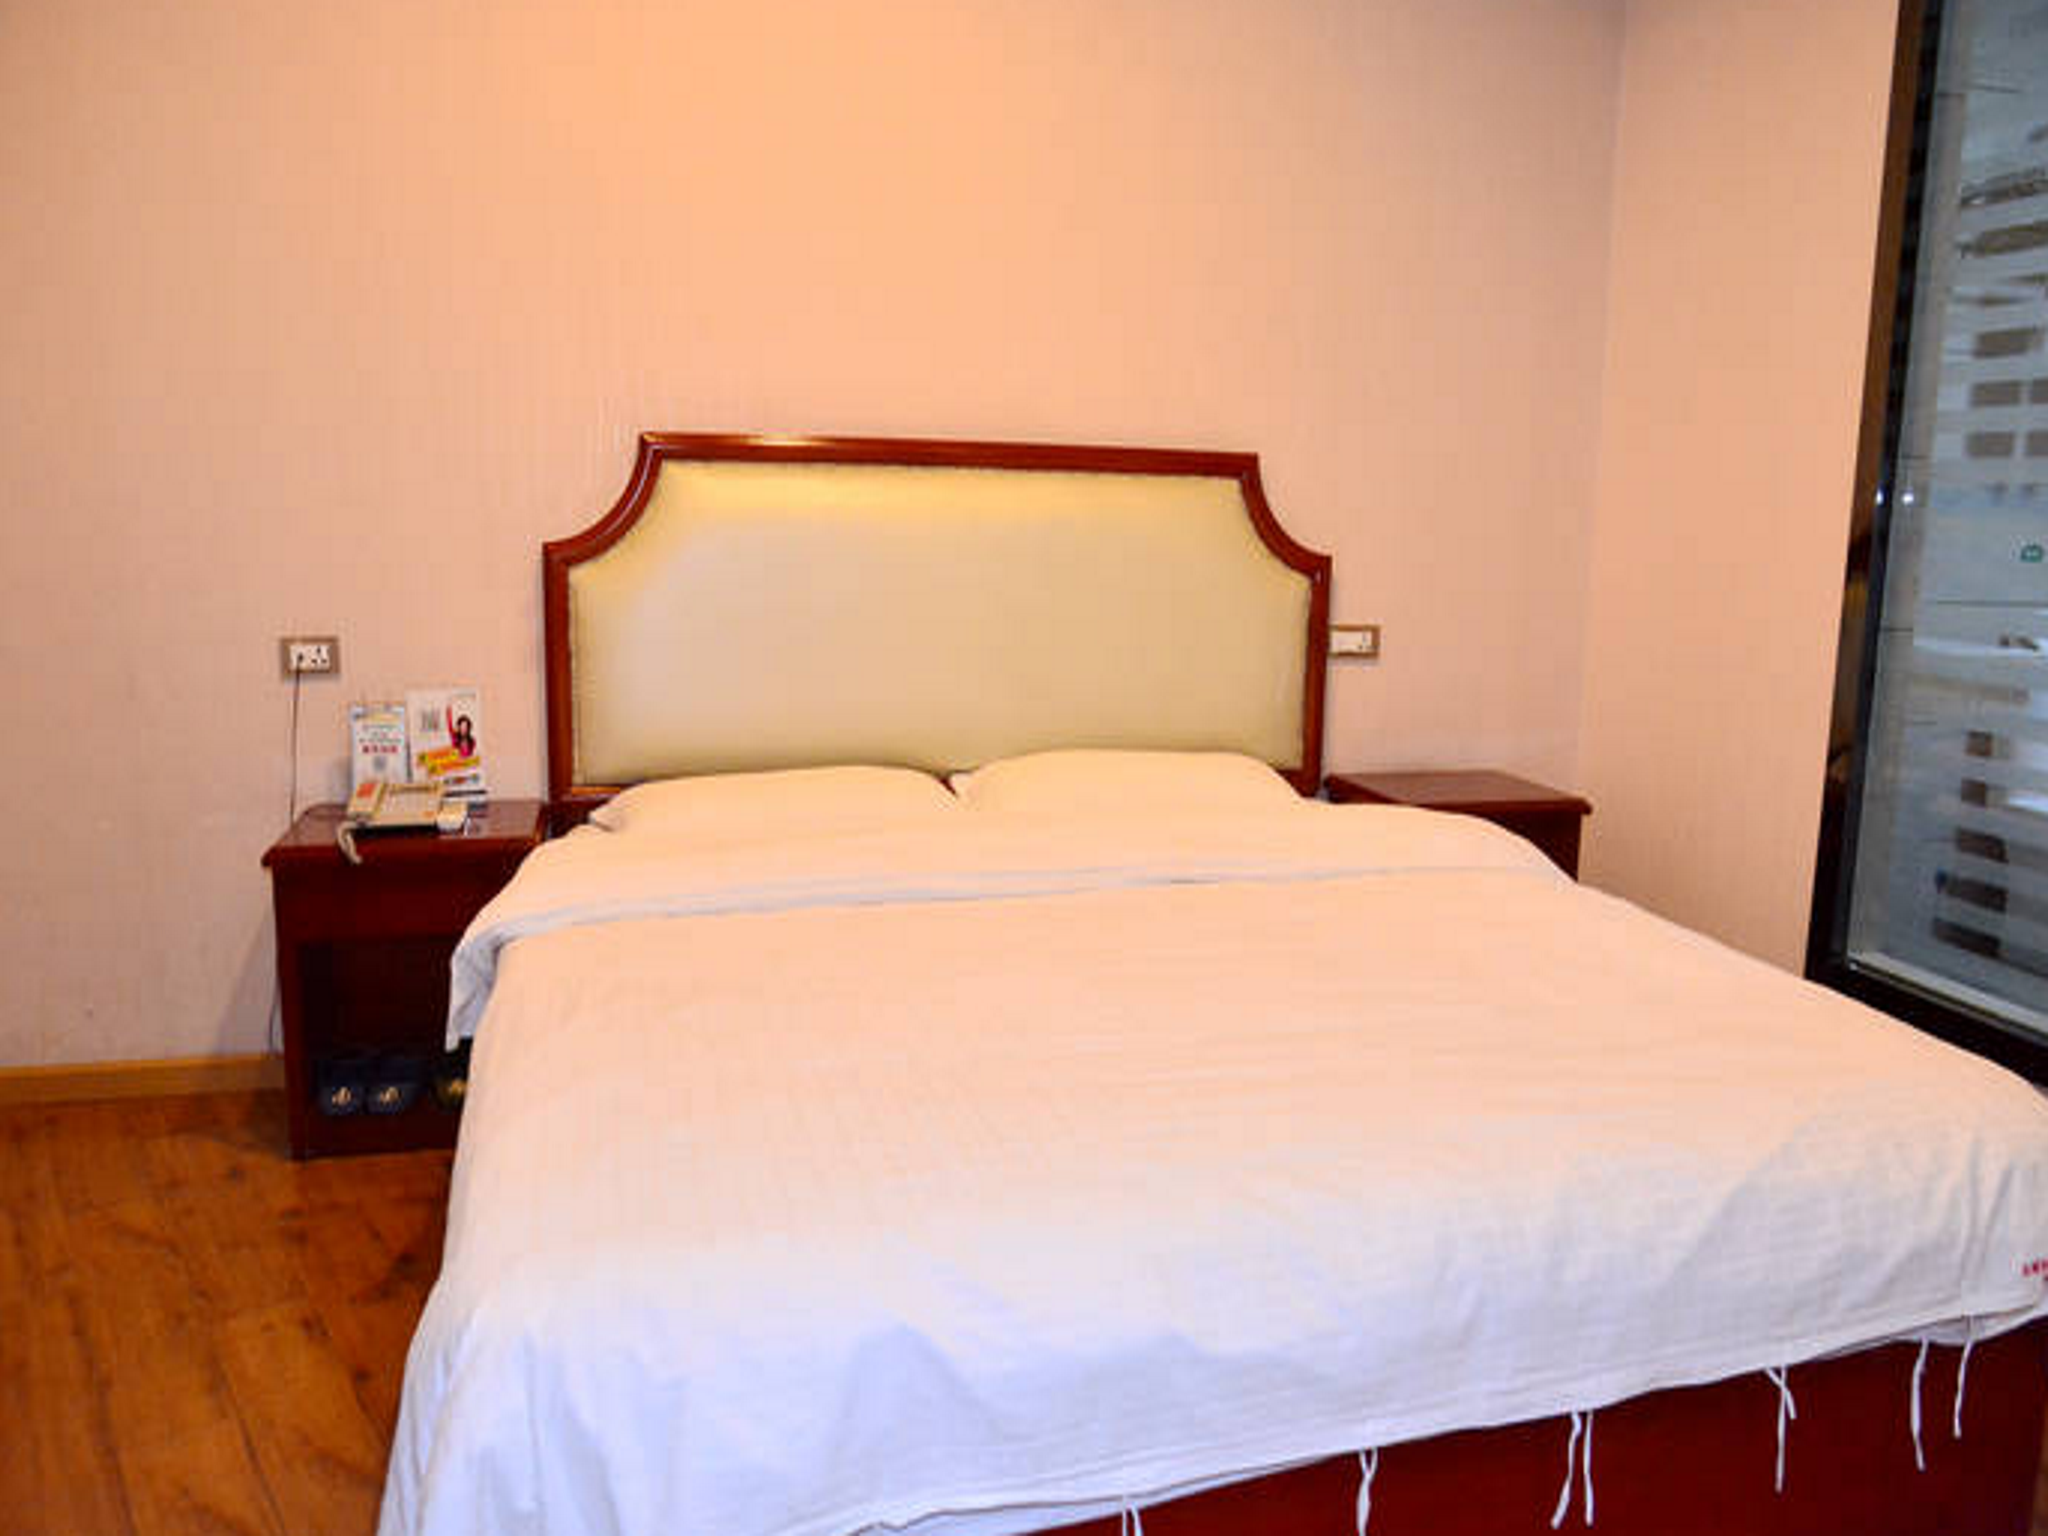 King Size Κρεβάτι (King Bed)